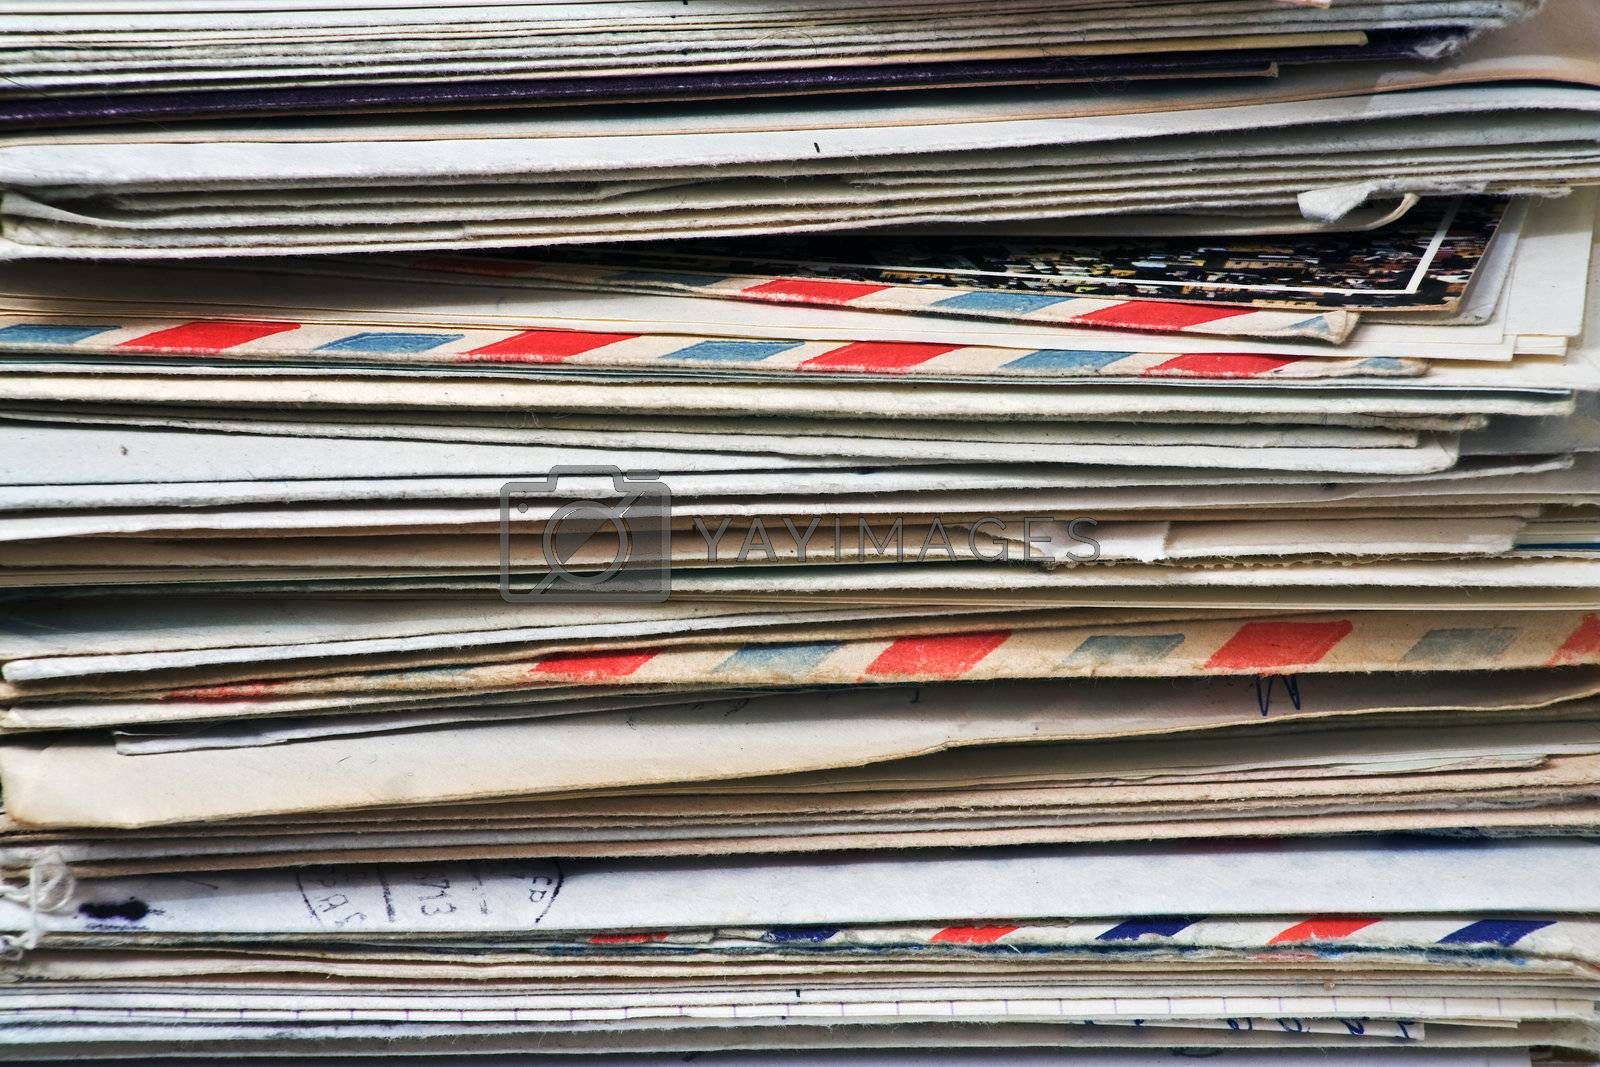 A bulk of old  letters and junk mail